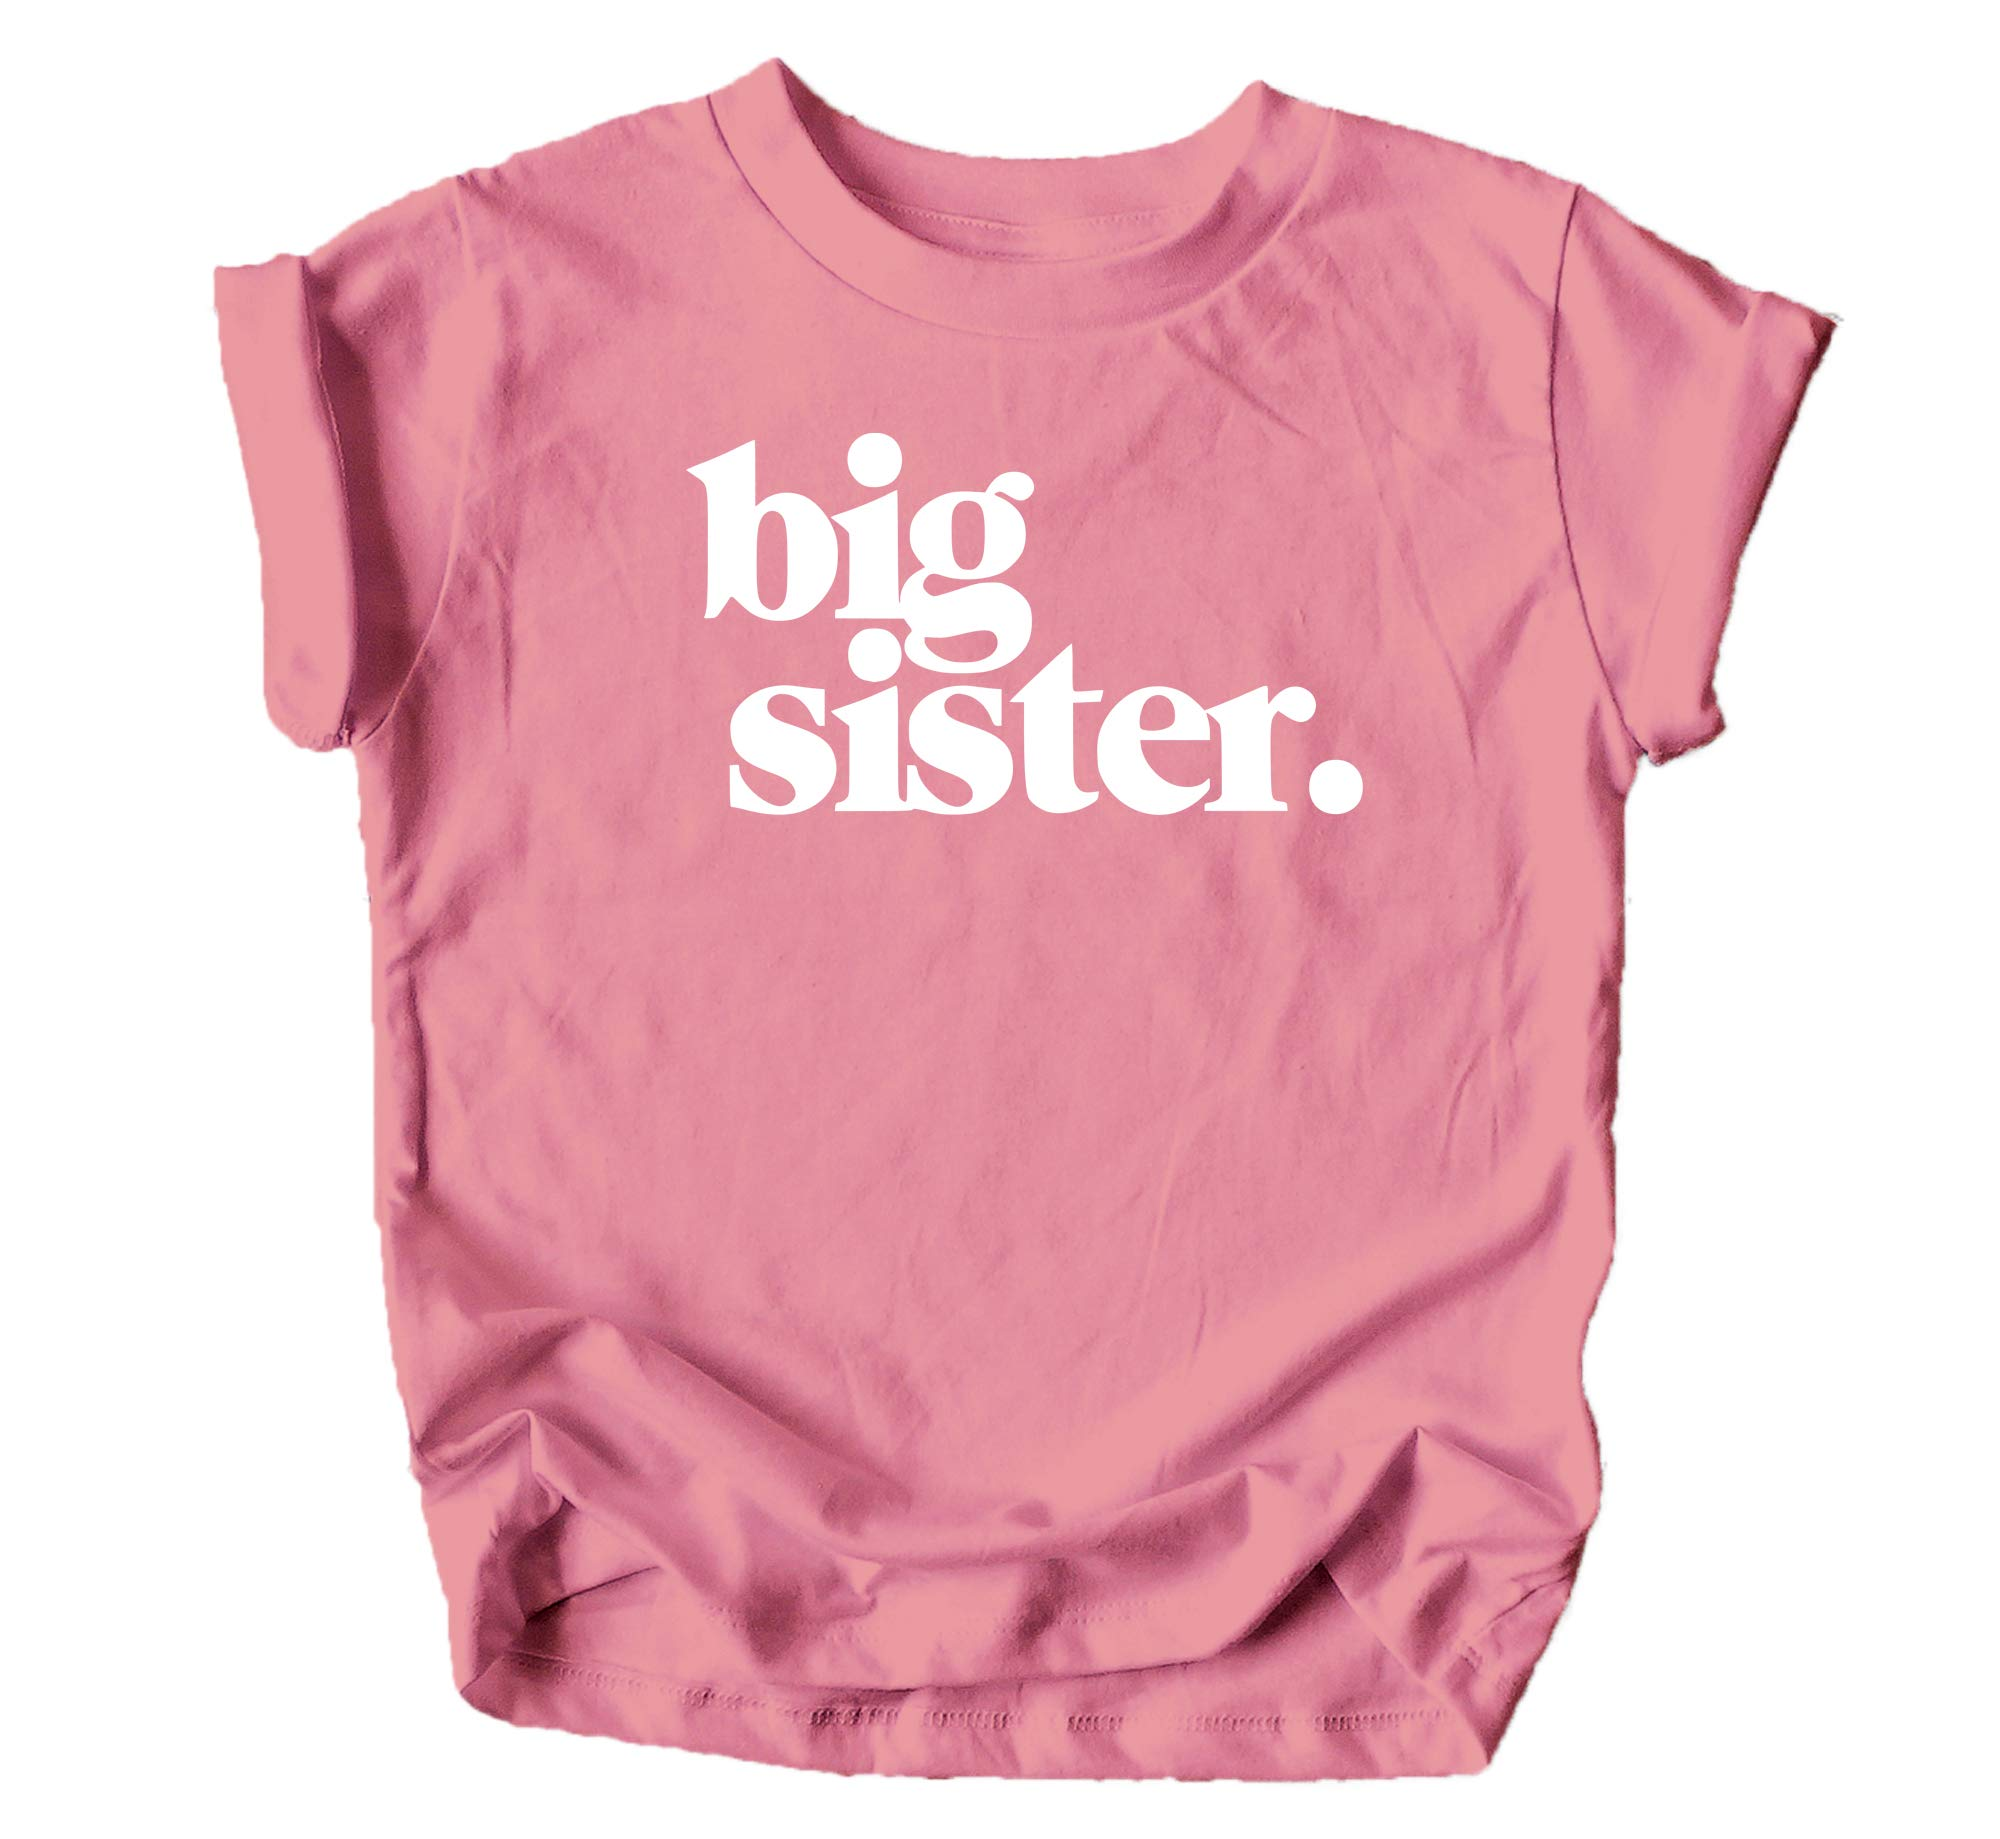 Bold Big Sister Colorful Sibling Reveal Announcement T-Shirt for Baby and Toddler Girls Sibling Outfits Mauve Shirt by Olive Loves Apple